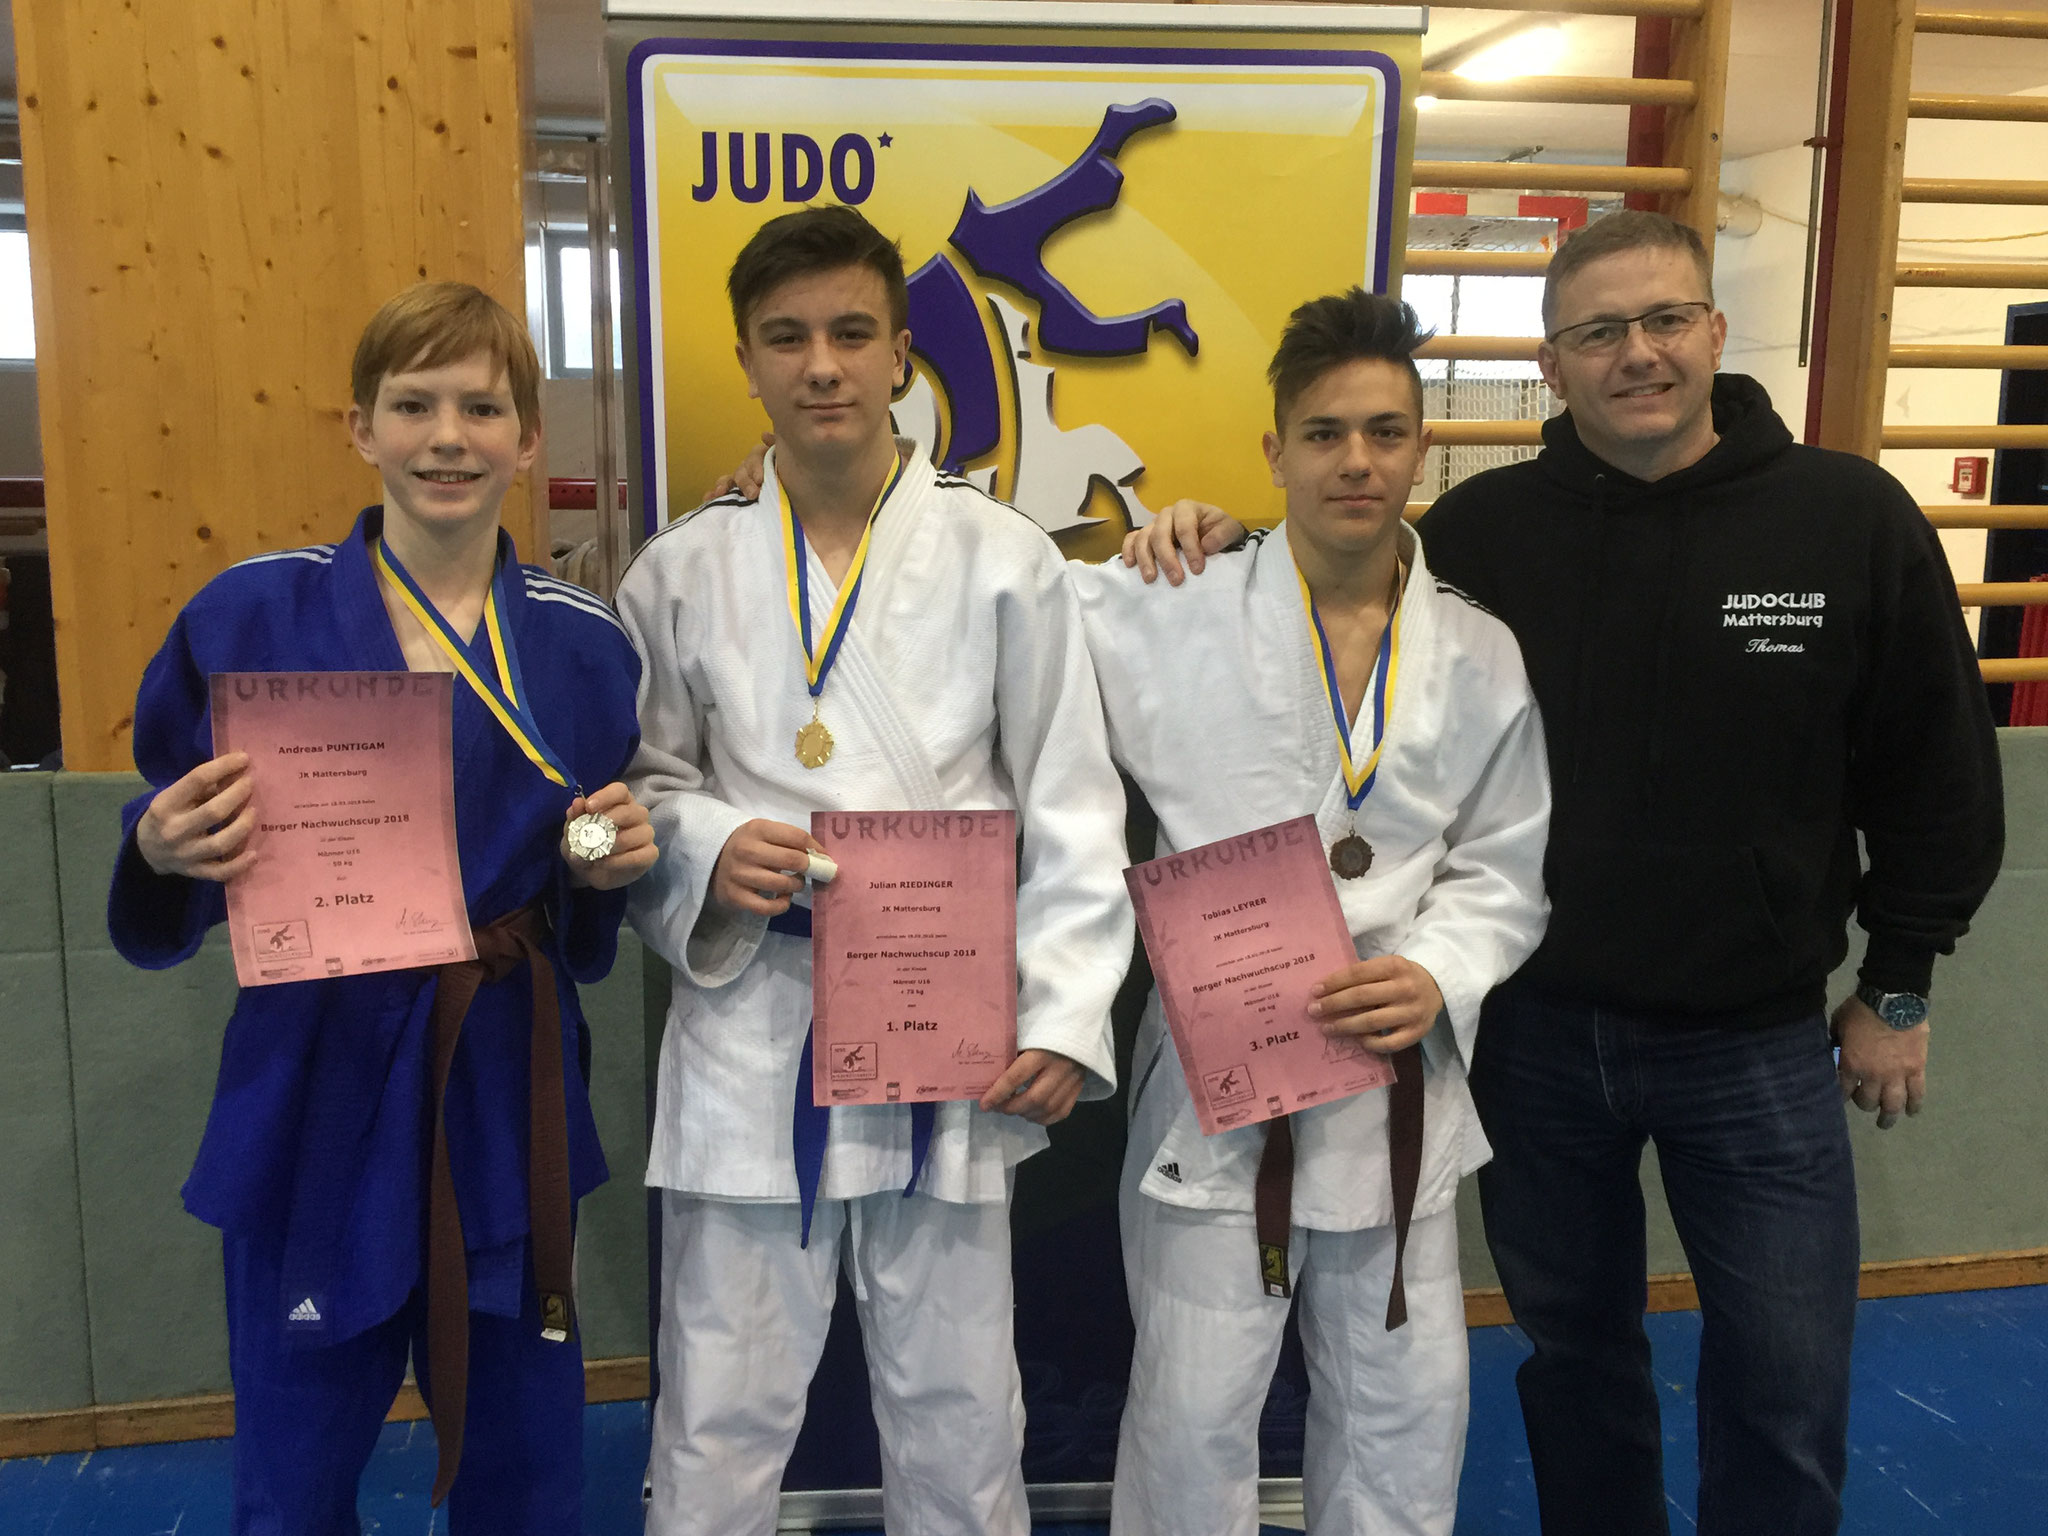 Andreas Puntigam, Julian Riedinger, Tobias Leyrer, Trainer T. Puntigam